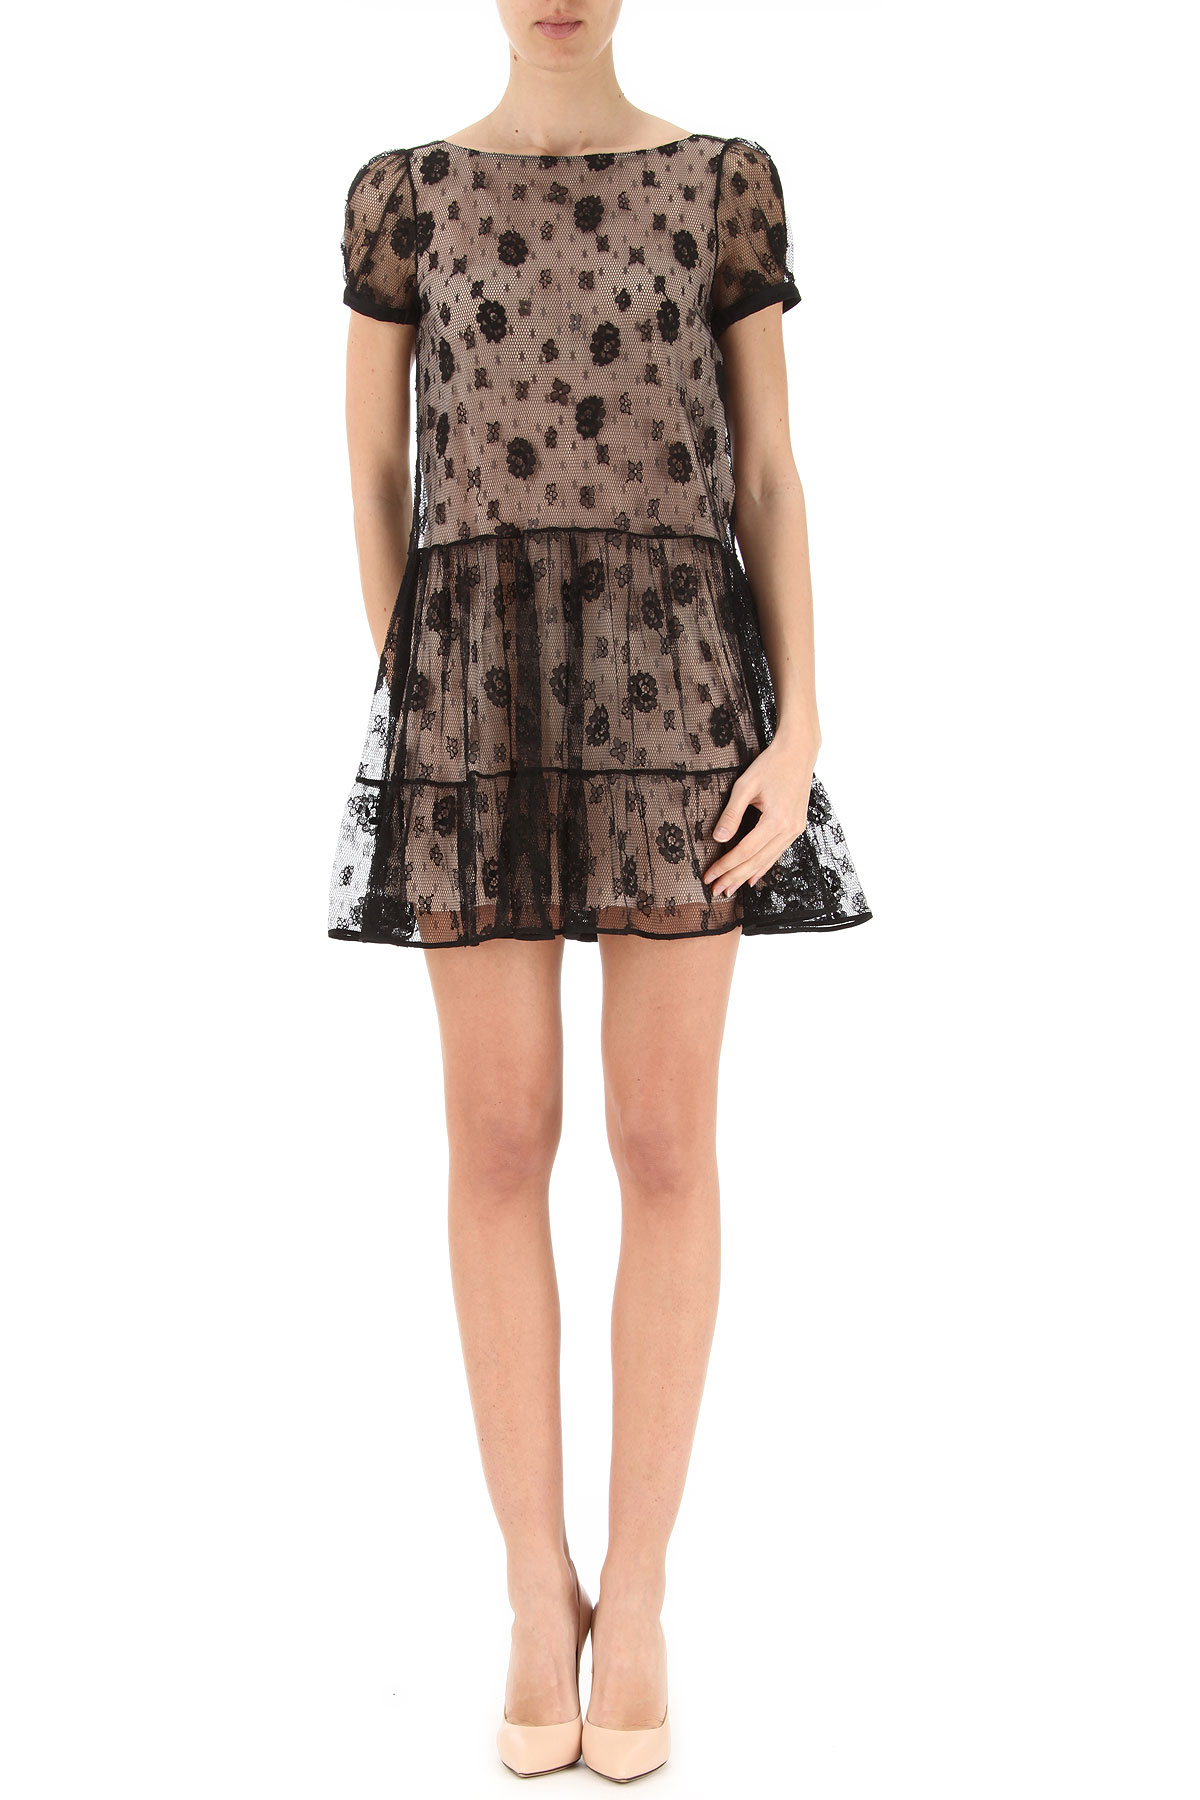 Valentino Dress for Women, Evening Cocktail Party On Sale in Outlet, Black, polyamide, 2017, 6 8 USA-355708